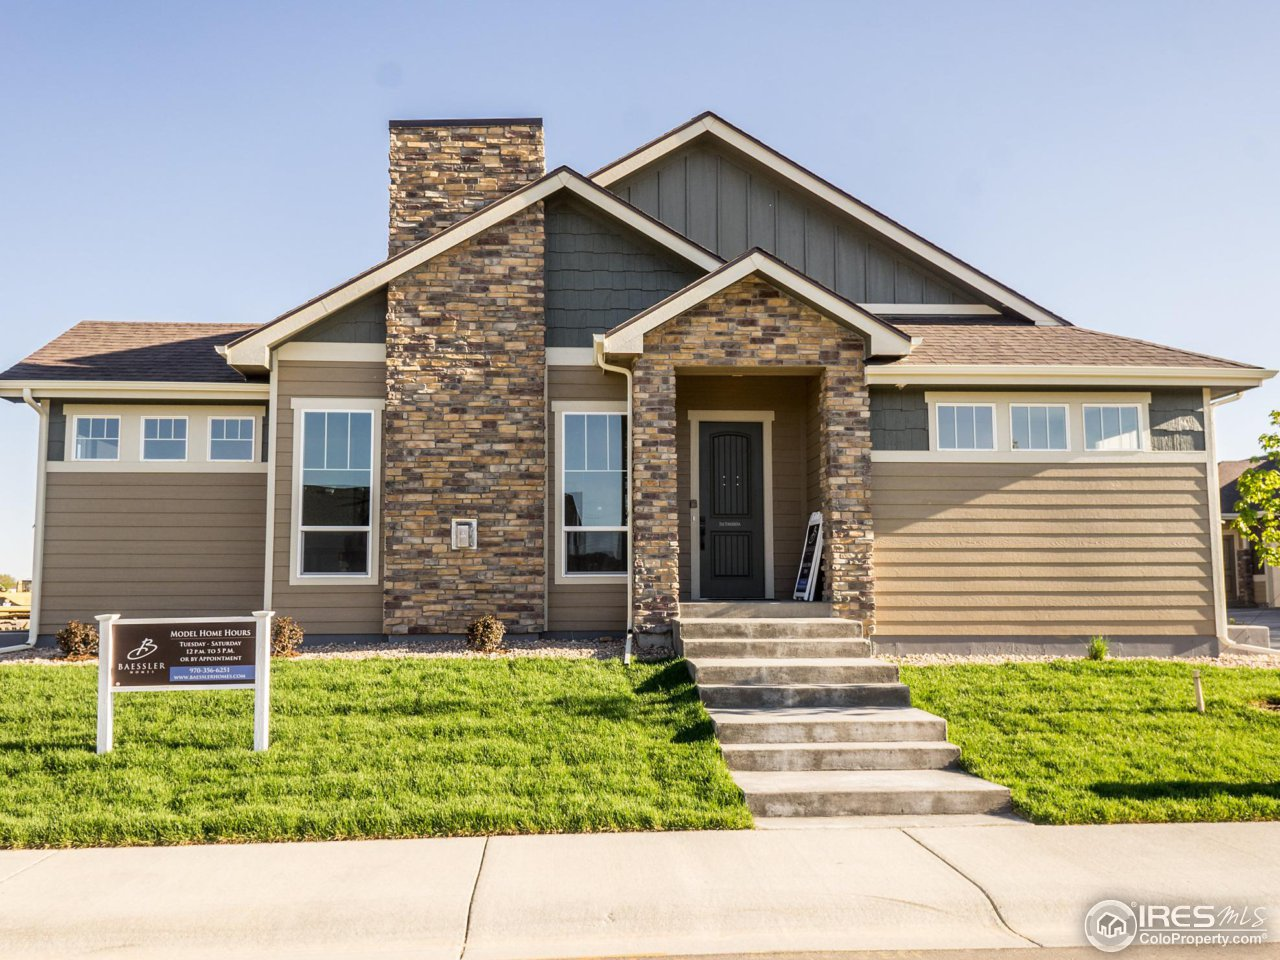 3480 Prickly Pear Dr, Loveland CO 80537